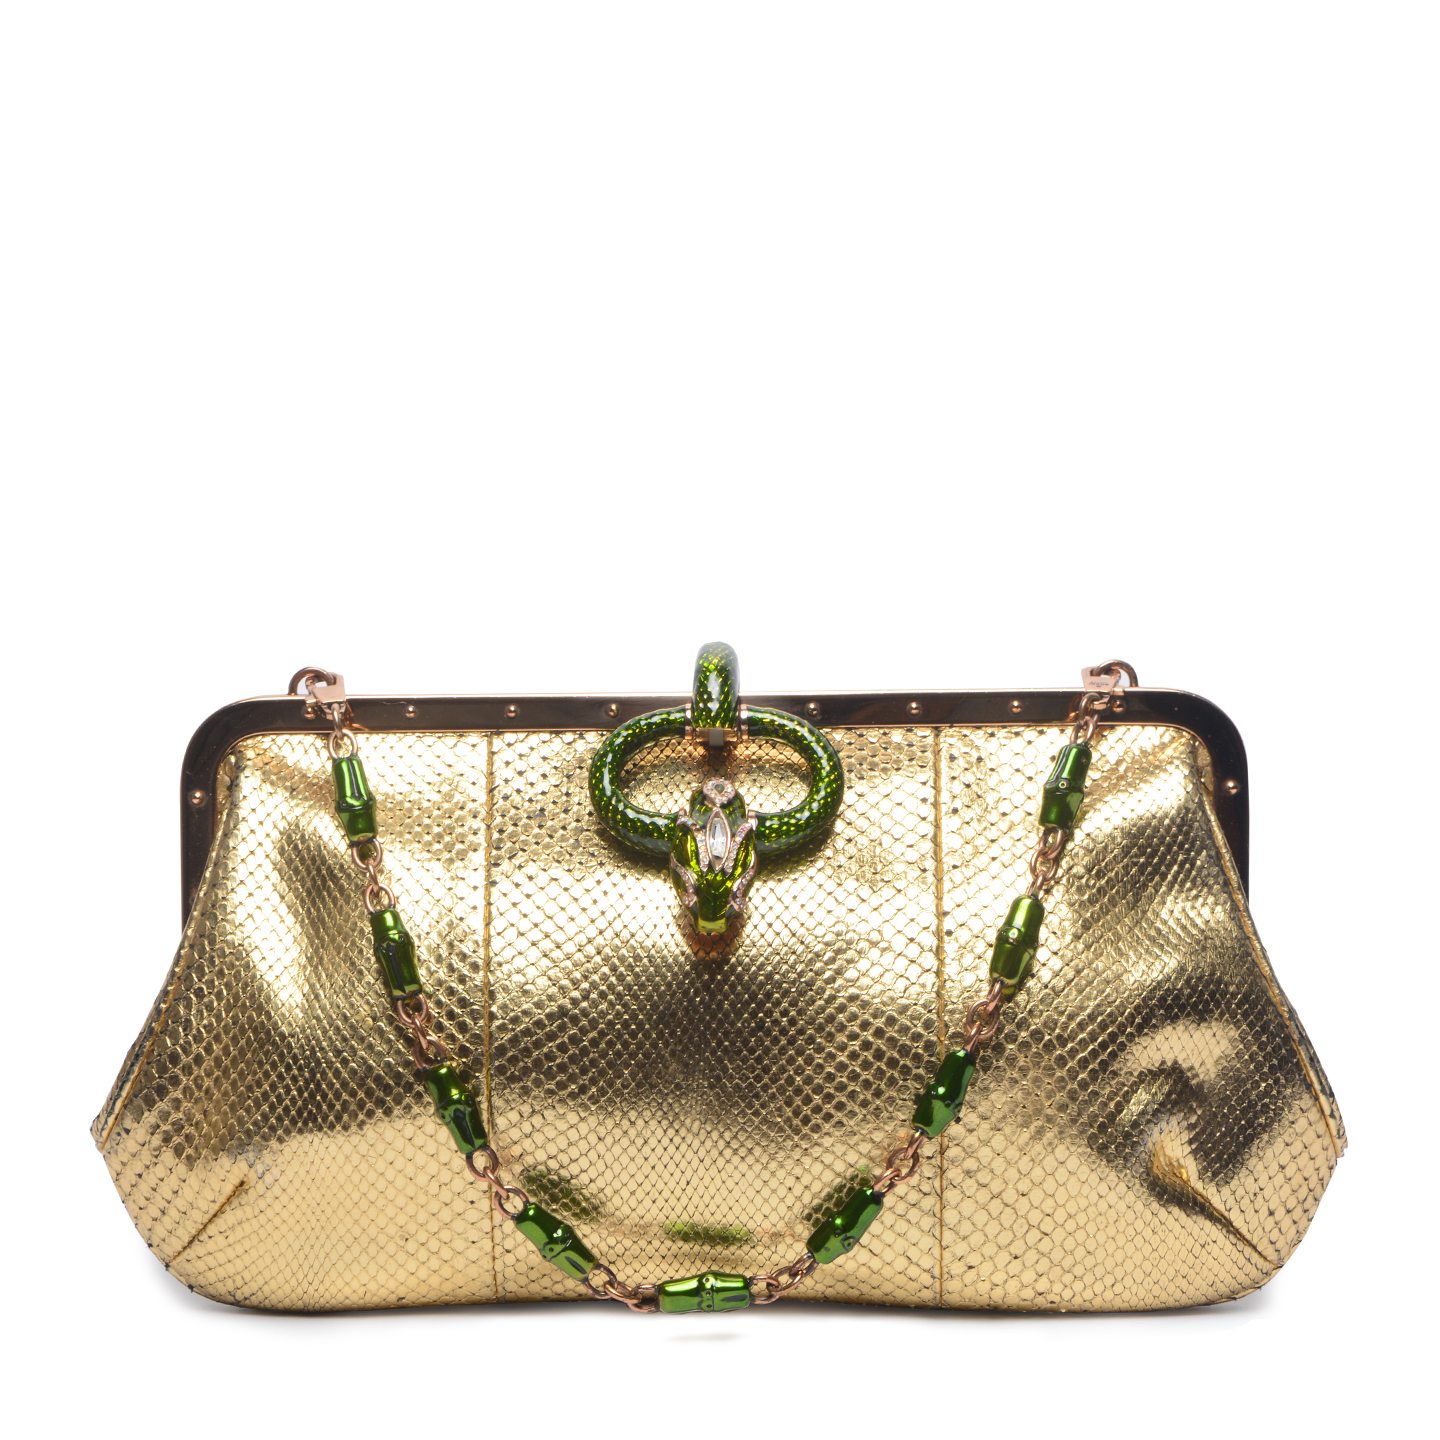 2b932e92d442 Tom Ford For Gucci Gilded Python Shoulder Bag